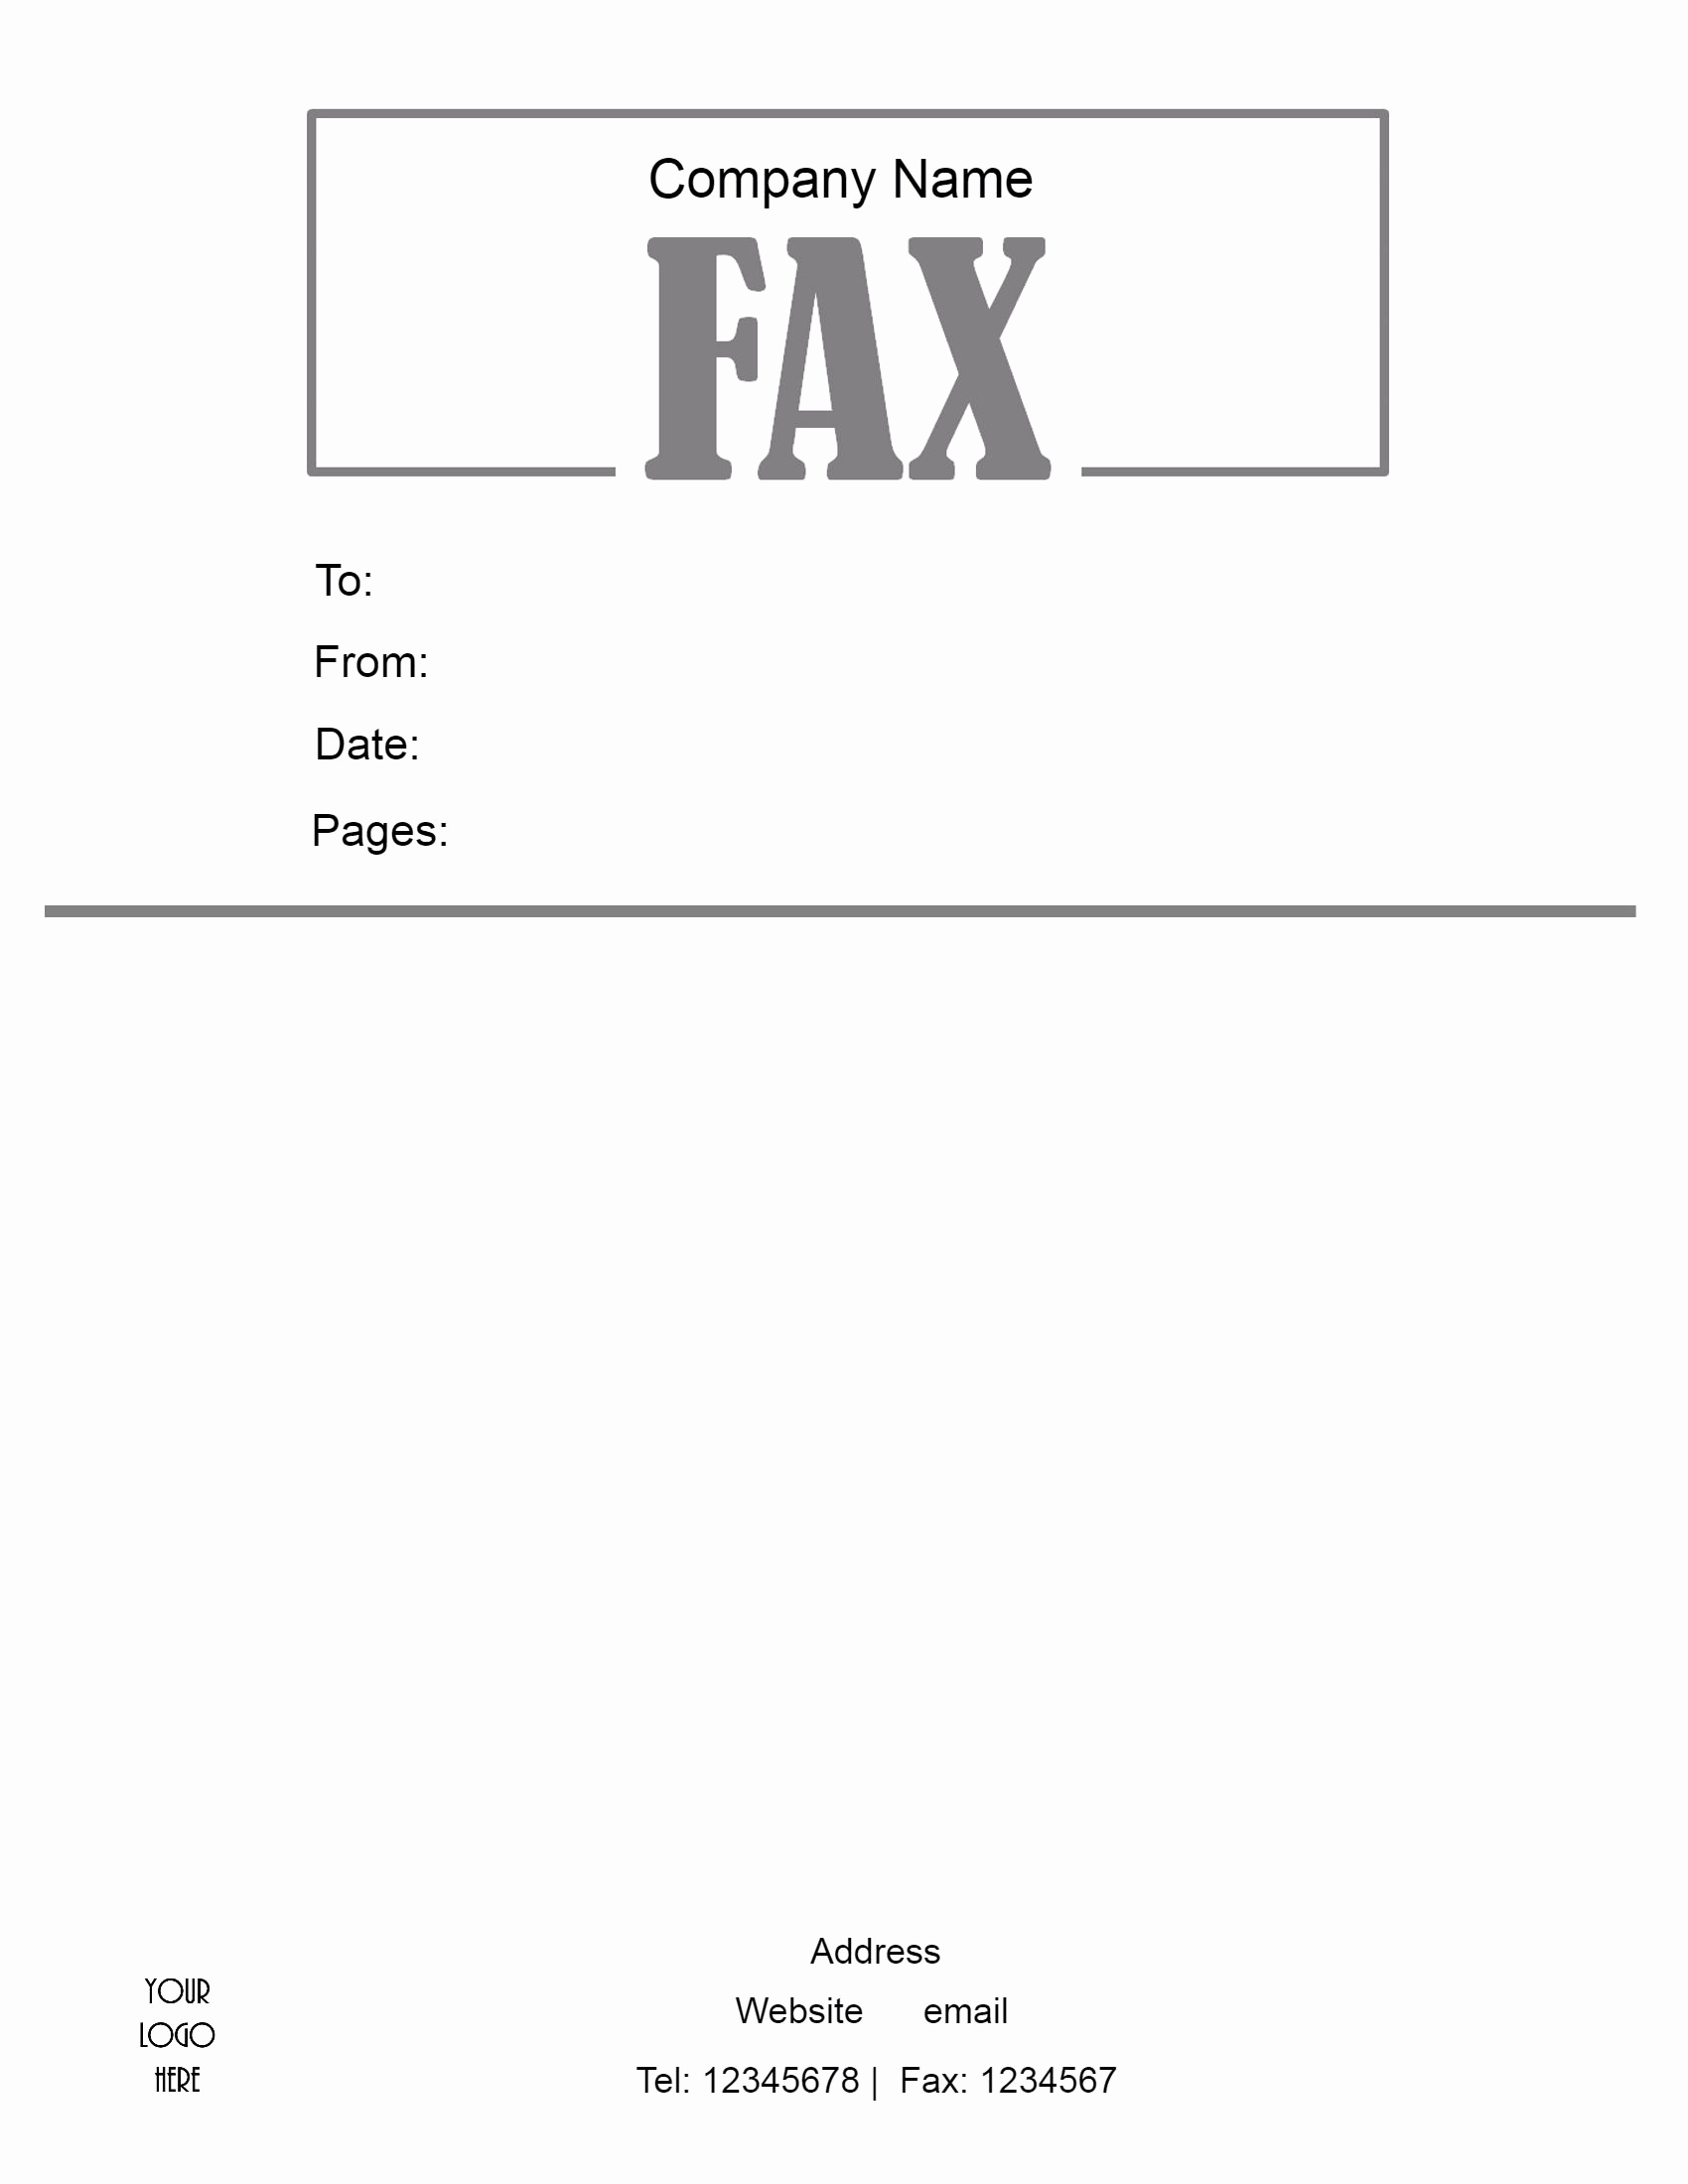 Free Fax Cover Sheets Luxury Free Fax Cover Sheet Template